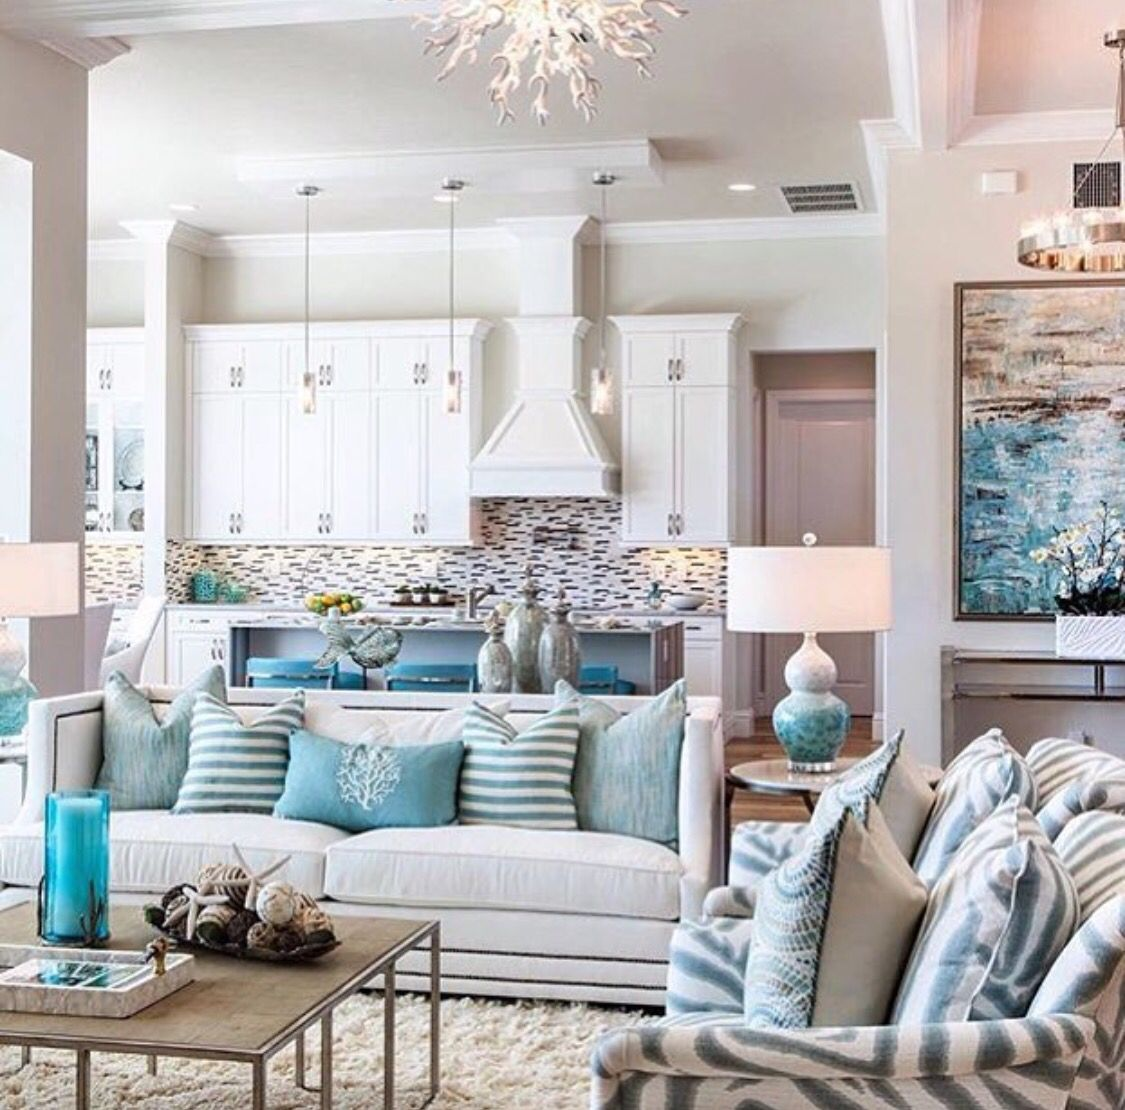 Beach Home Interior Design Ideas: Beach House Decor, Home